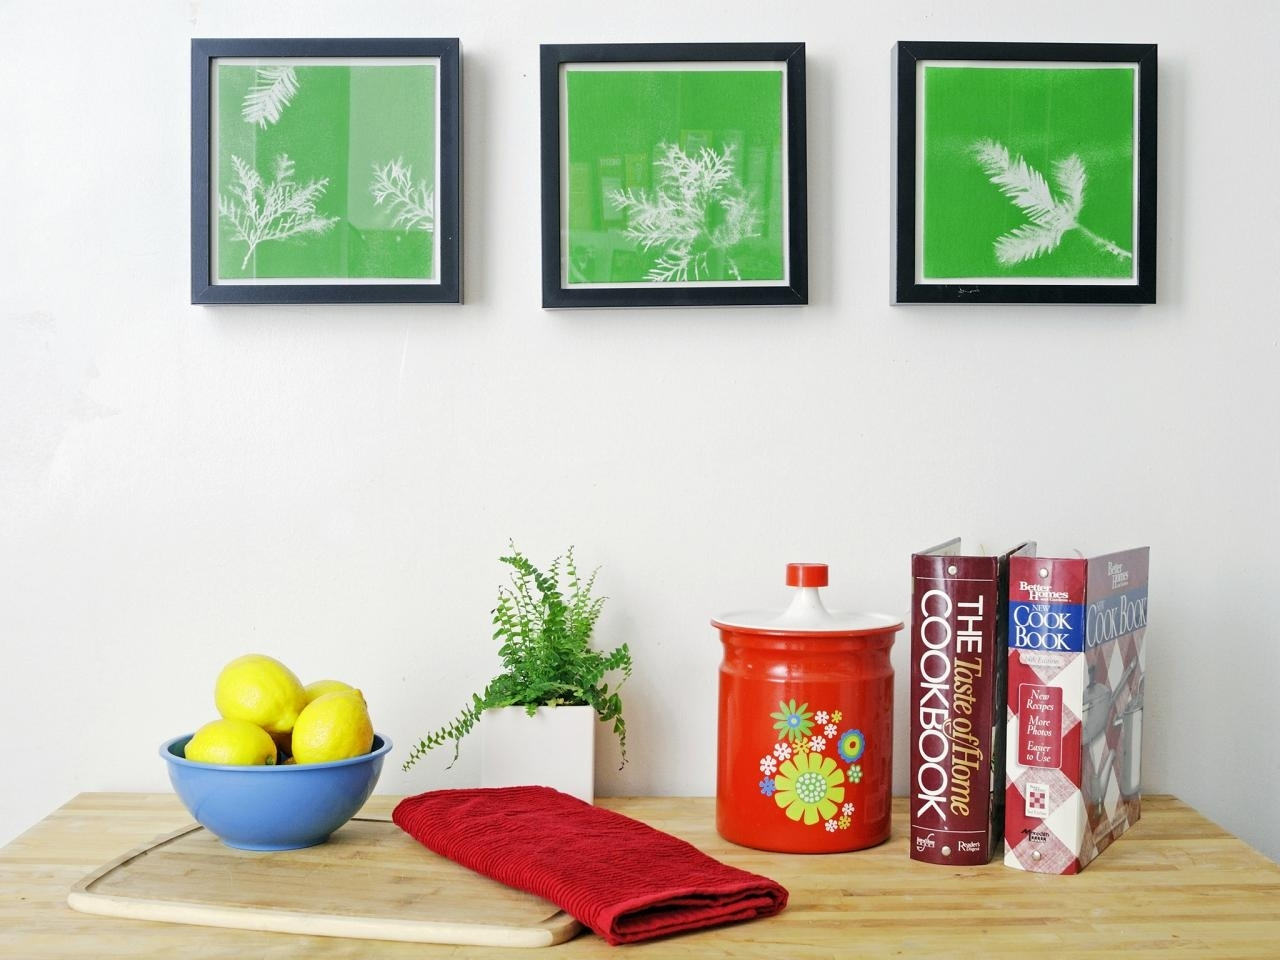 Turn Leaves And Foliage Into Diy Canvas Wall Art | Hgtv Regarding Current Diy Canvas Wall Art (View 15 of 15)